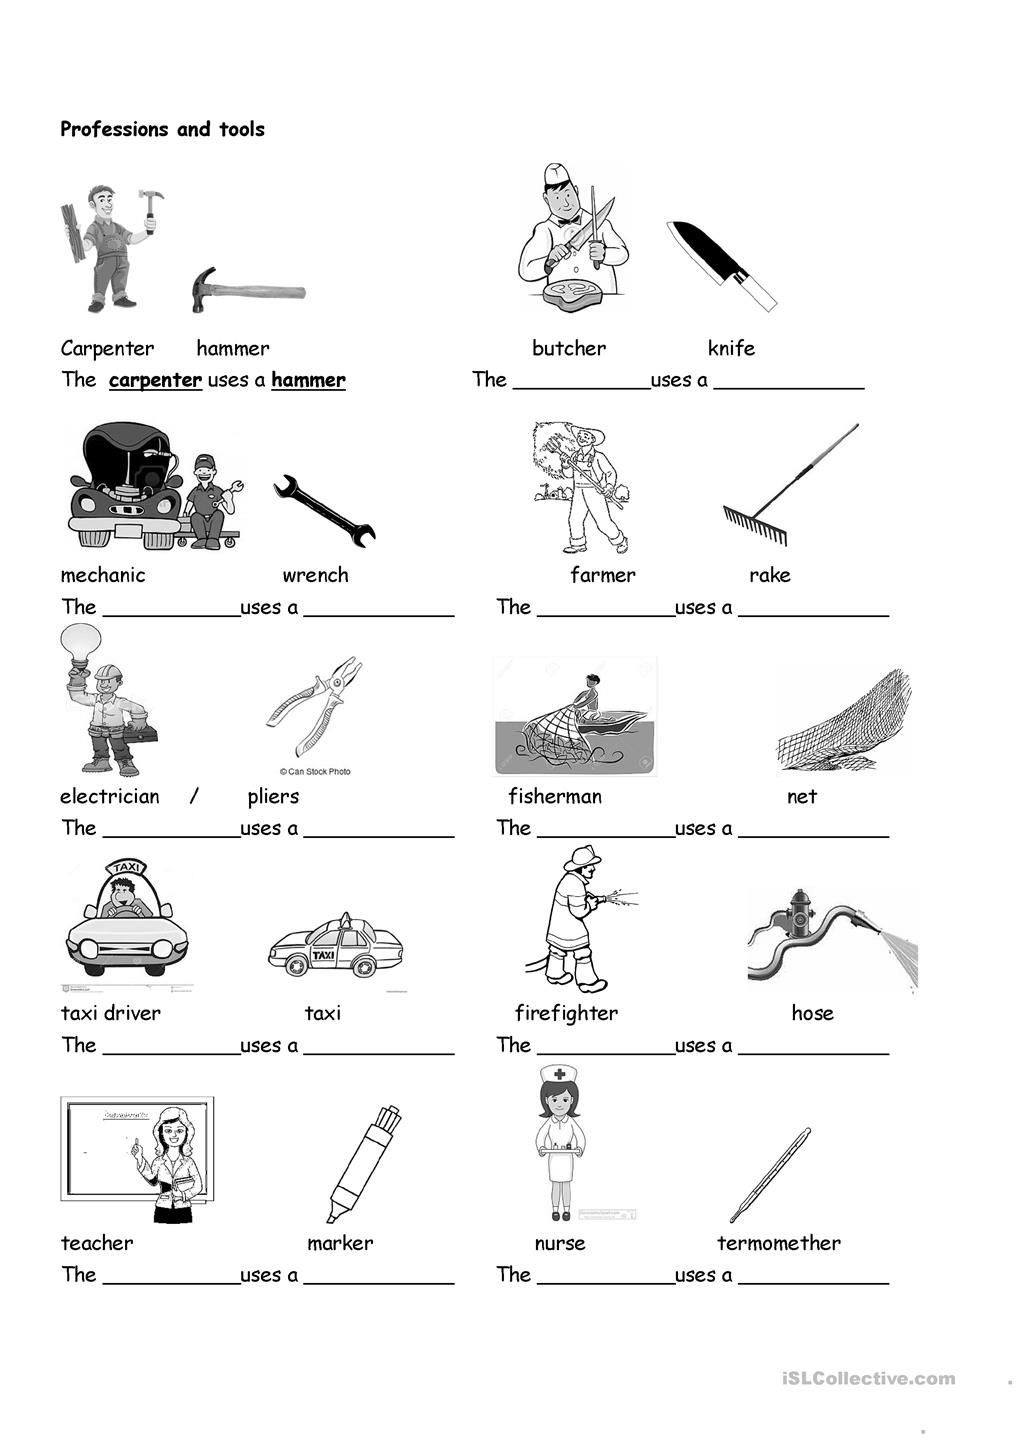 Life Skills Vocabulary Worksheets Professions and tools